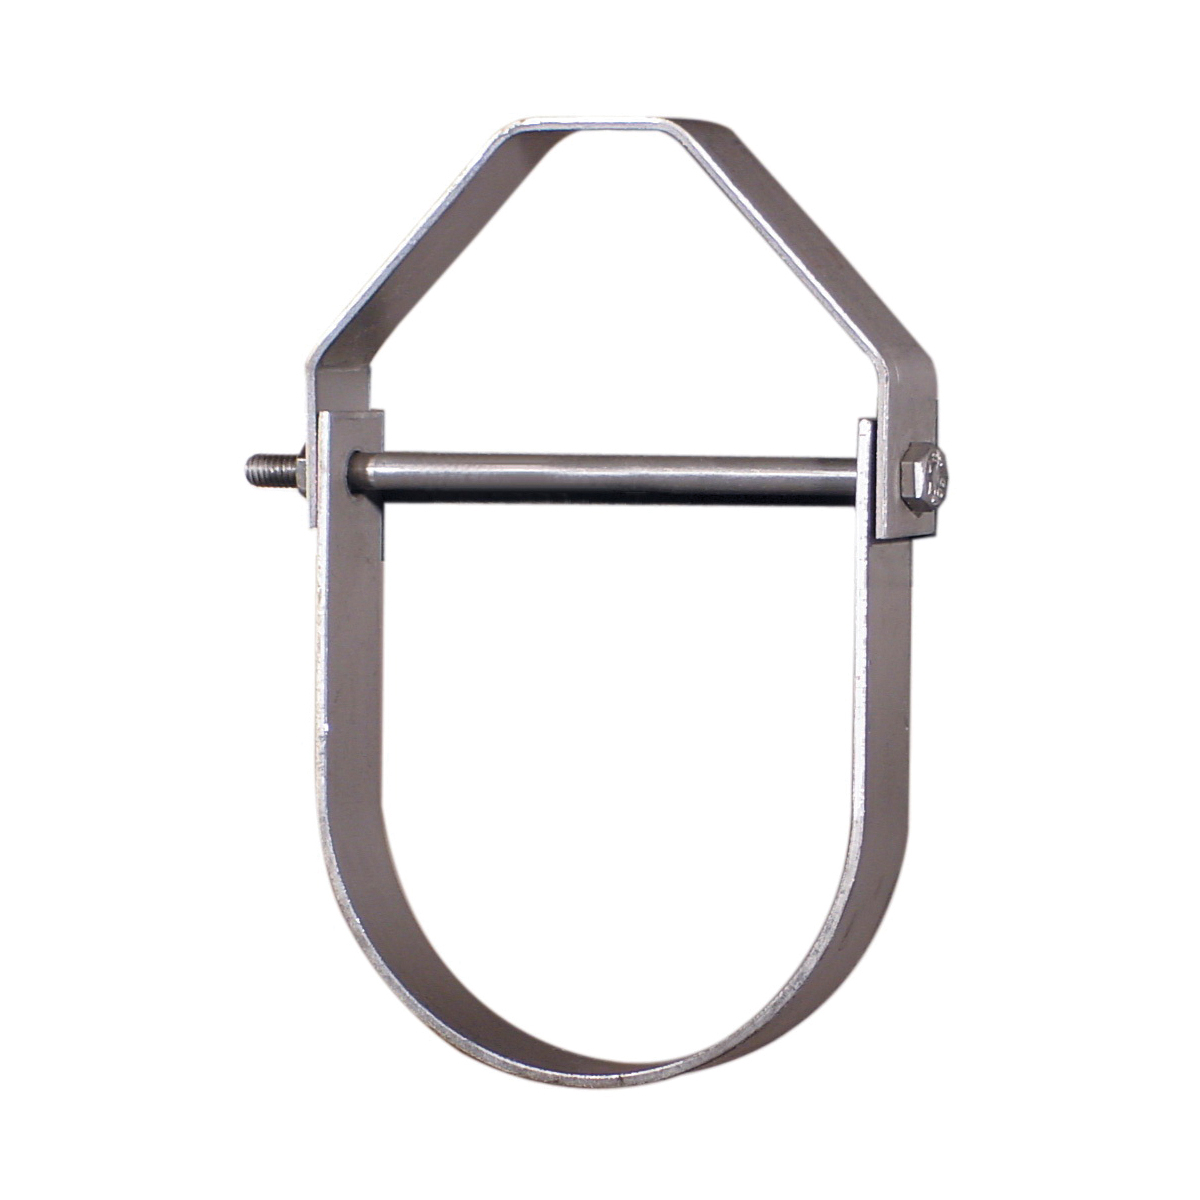 Anvil® 0560299836 FIG 65 Adjustable Clevis Hanger, 1 in Pipe, 3/8 in Rod, 250 lb Load, Carbon Steel, Galvanized